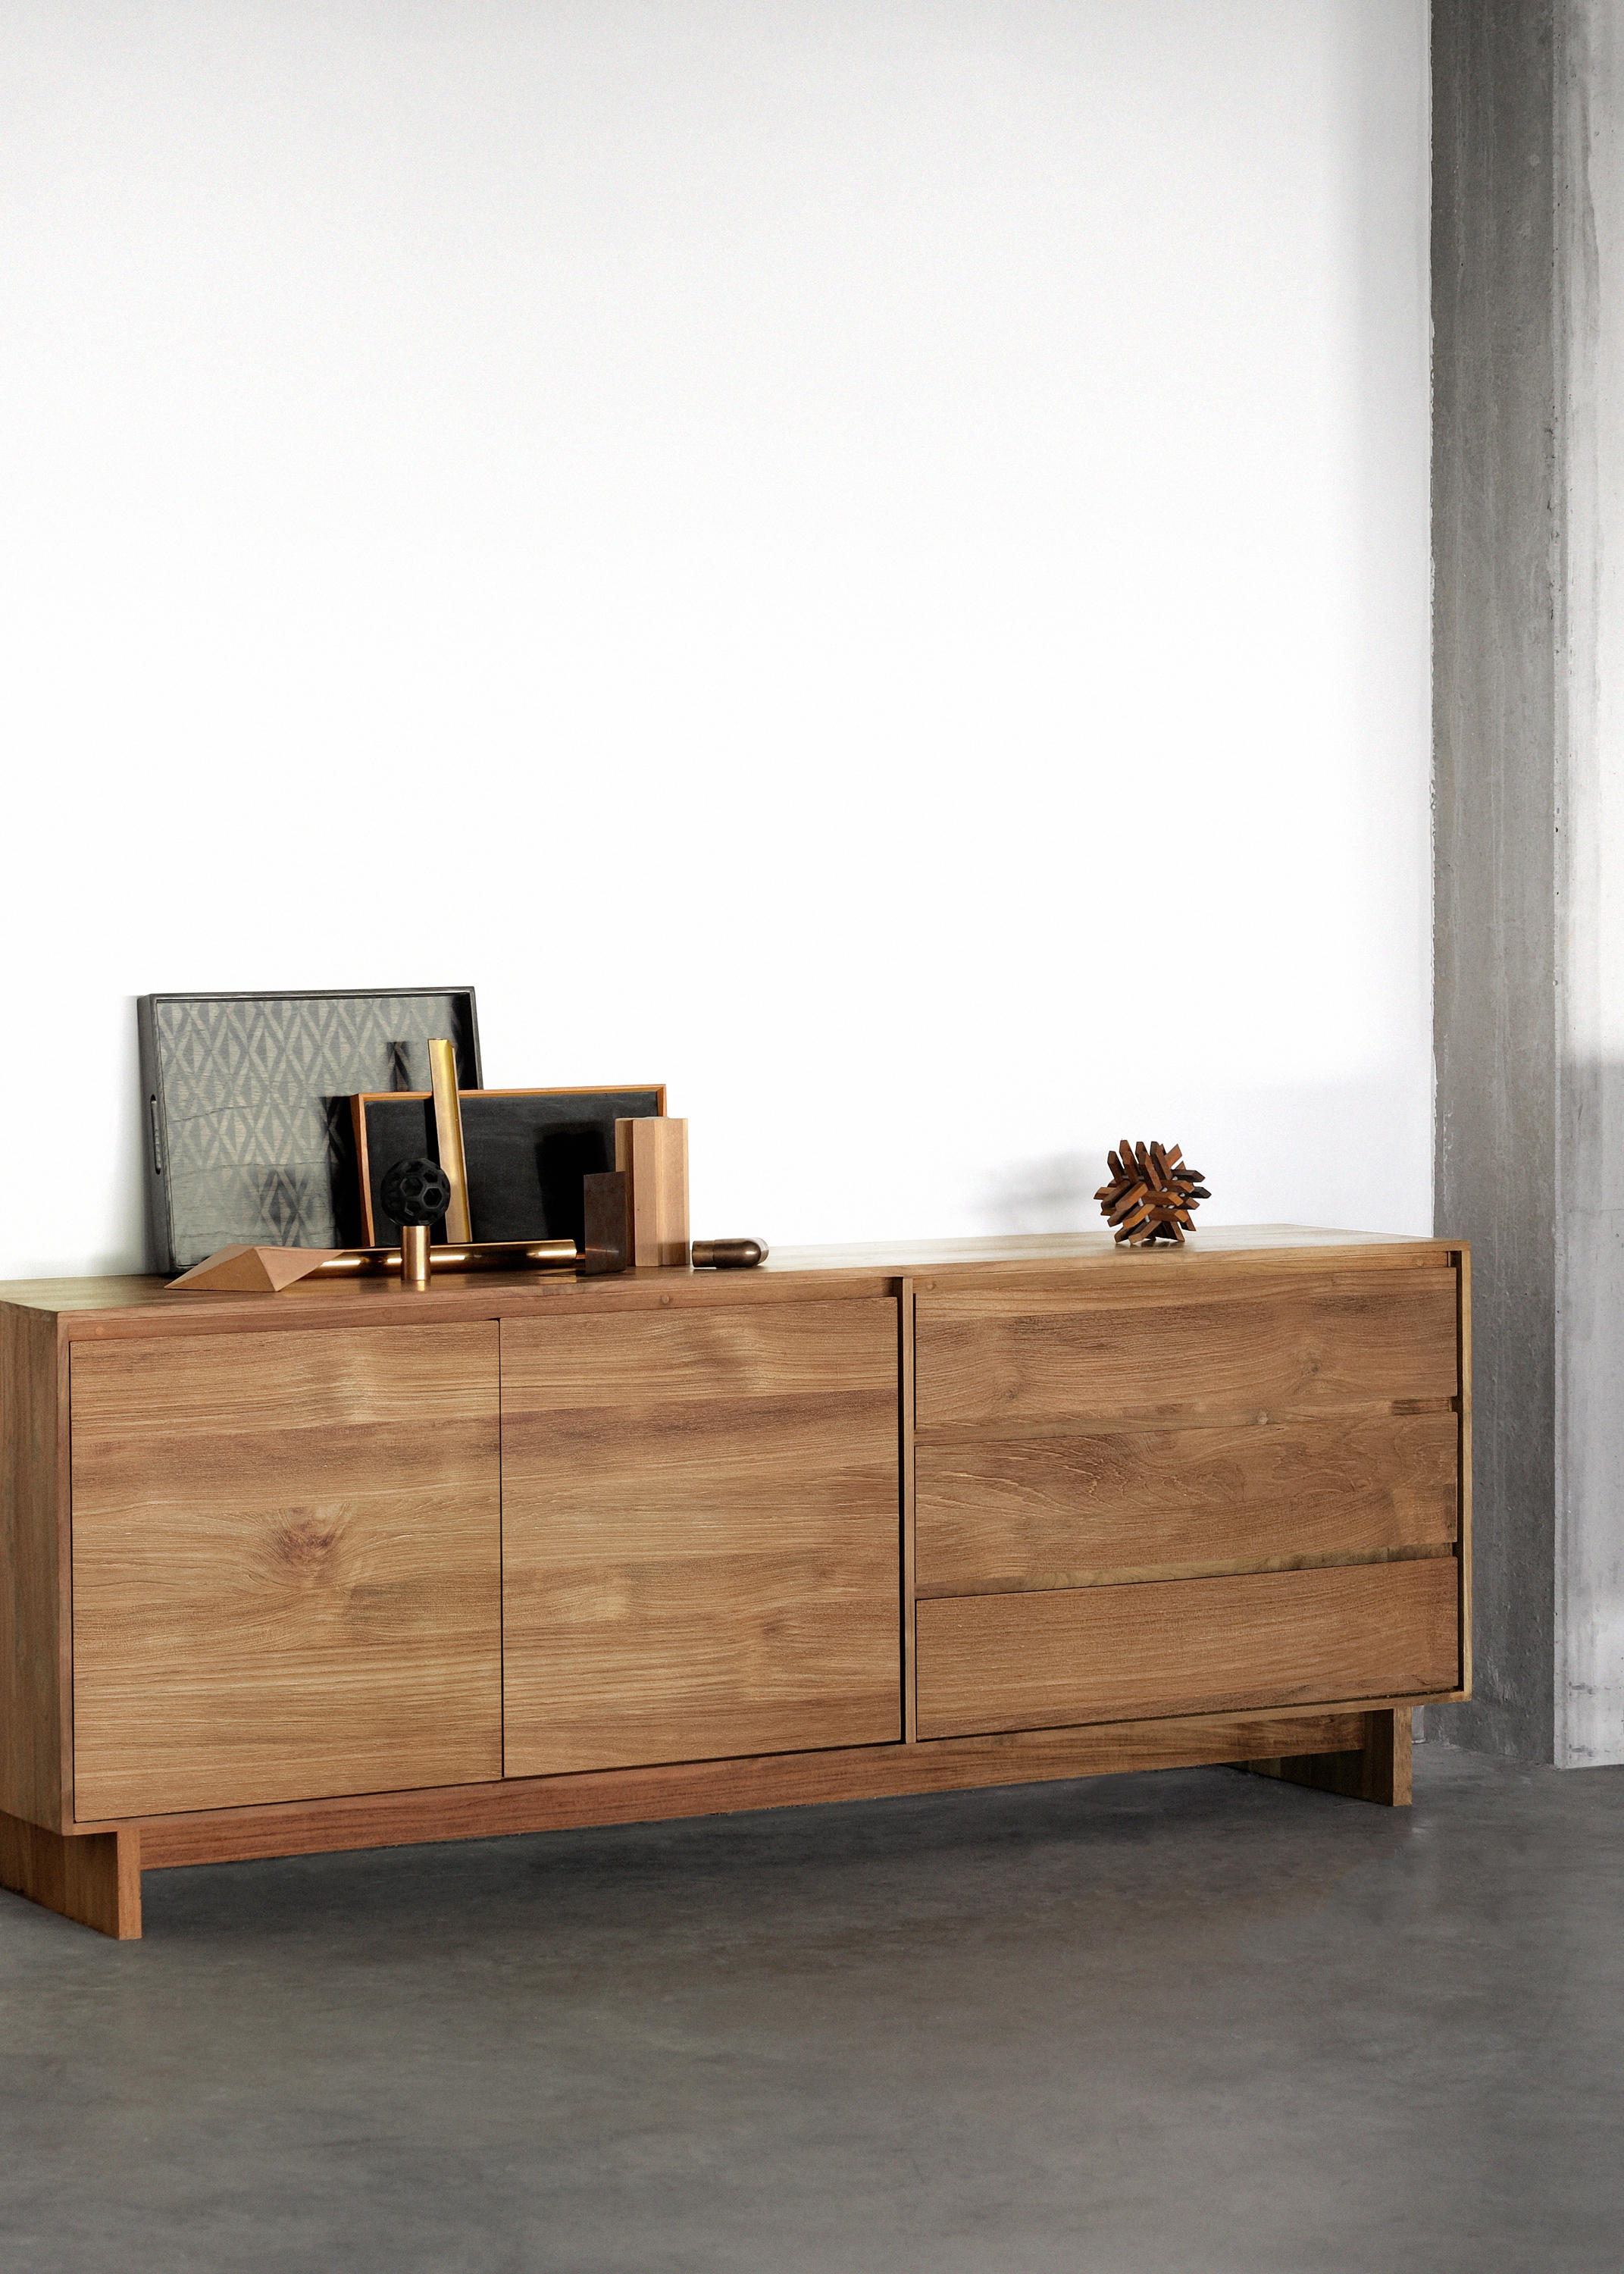 Teak Wave Sideboard Sideboards From Ethnicraft Architonic # Meuble Tv Wave